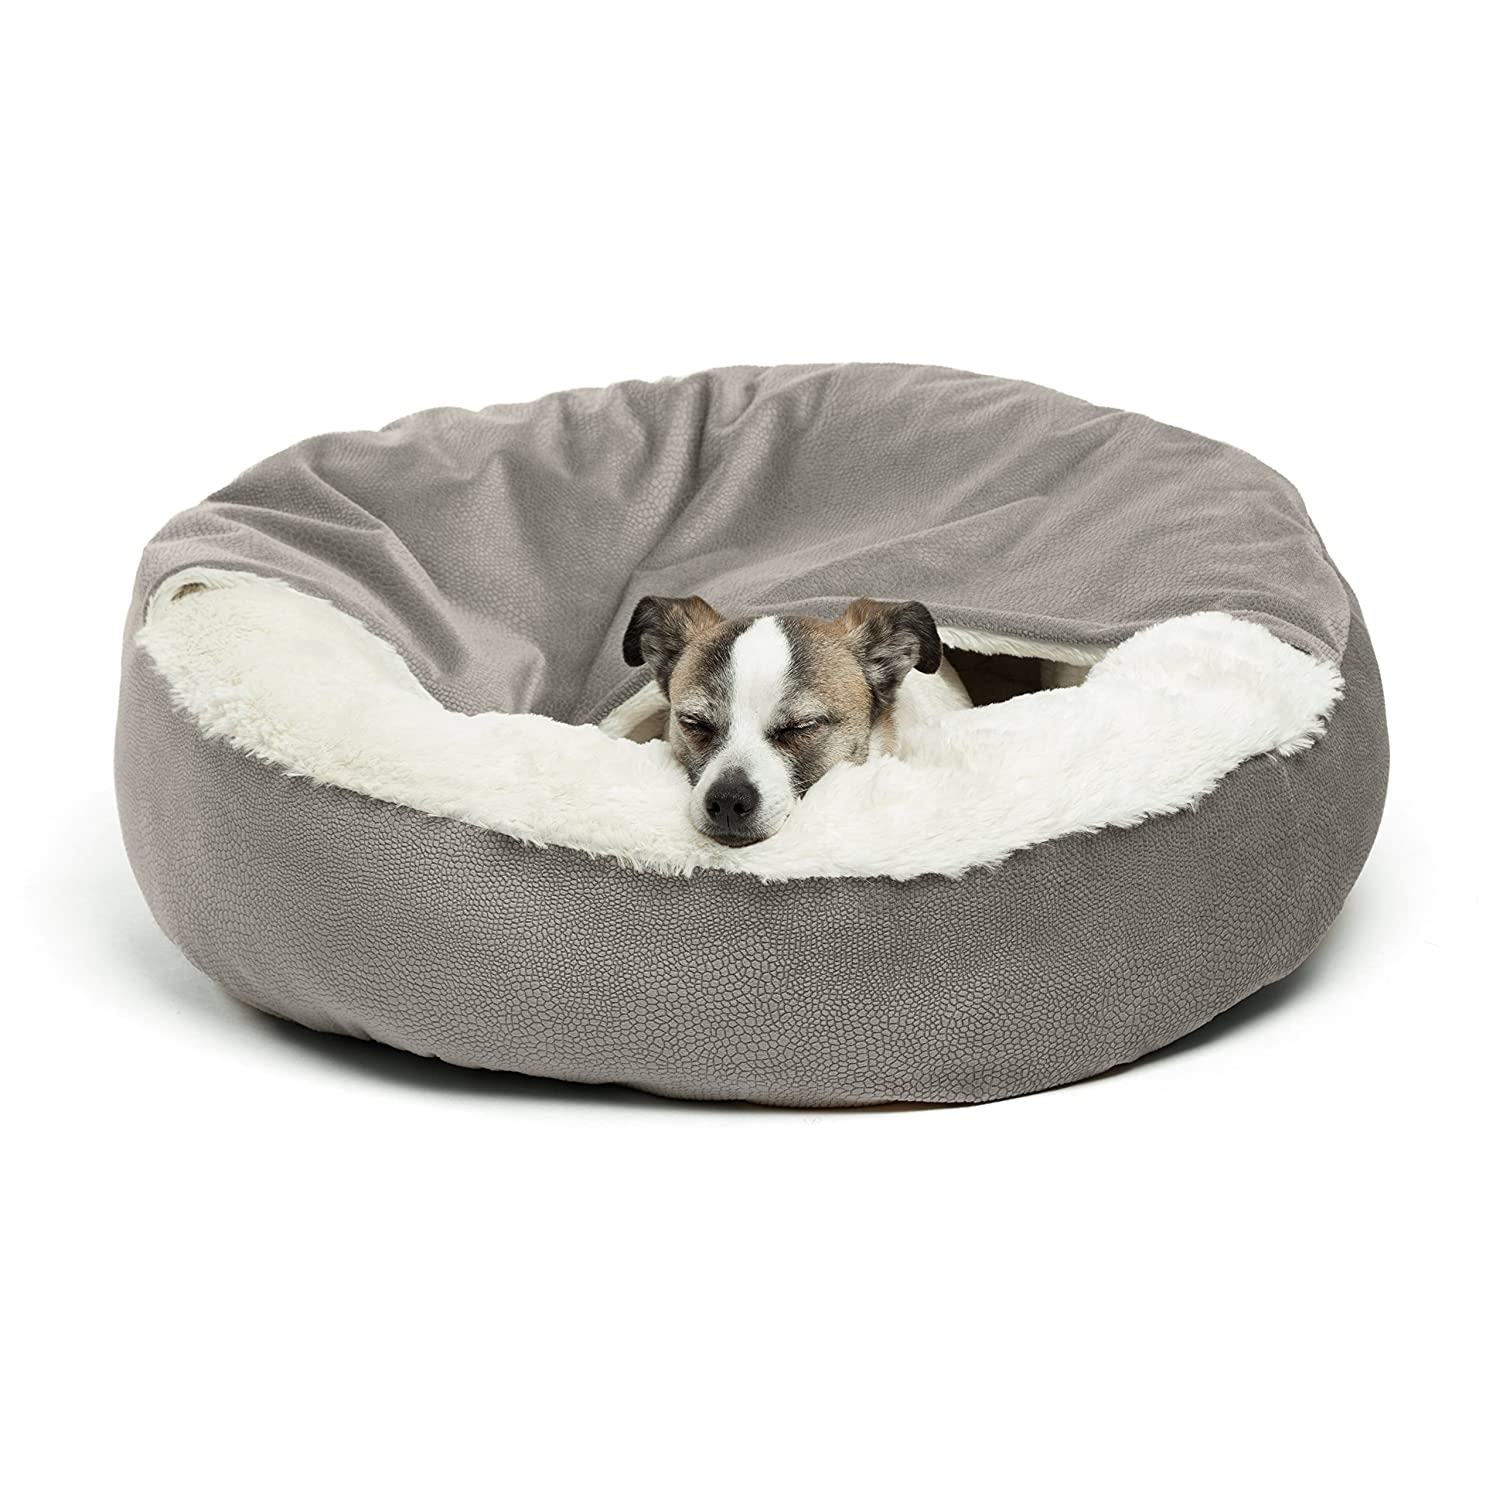 Best Blankets For Dogs Best Friends by Sheri Cozy Cuddler – Luxury Dog Bed with Blanket